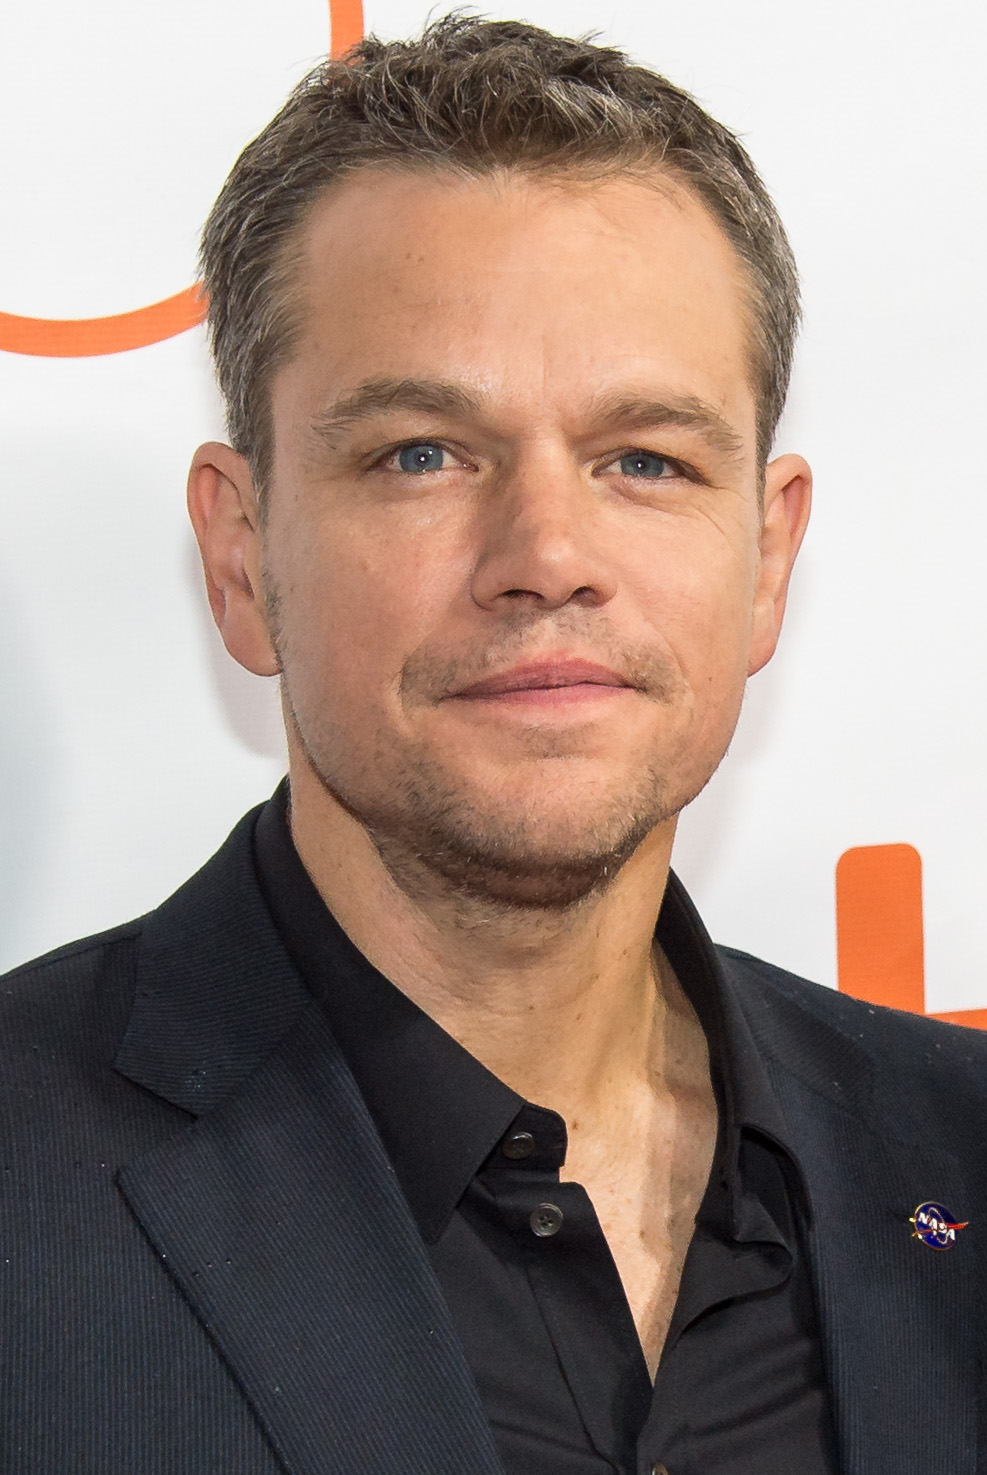 Matt Damon - Wikipedia